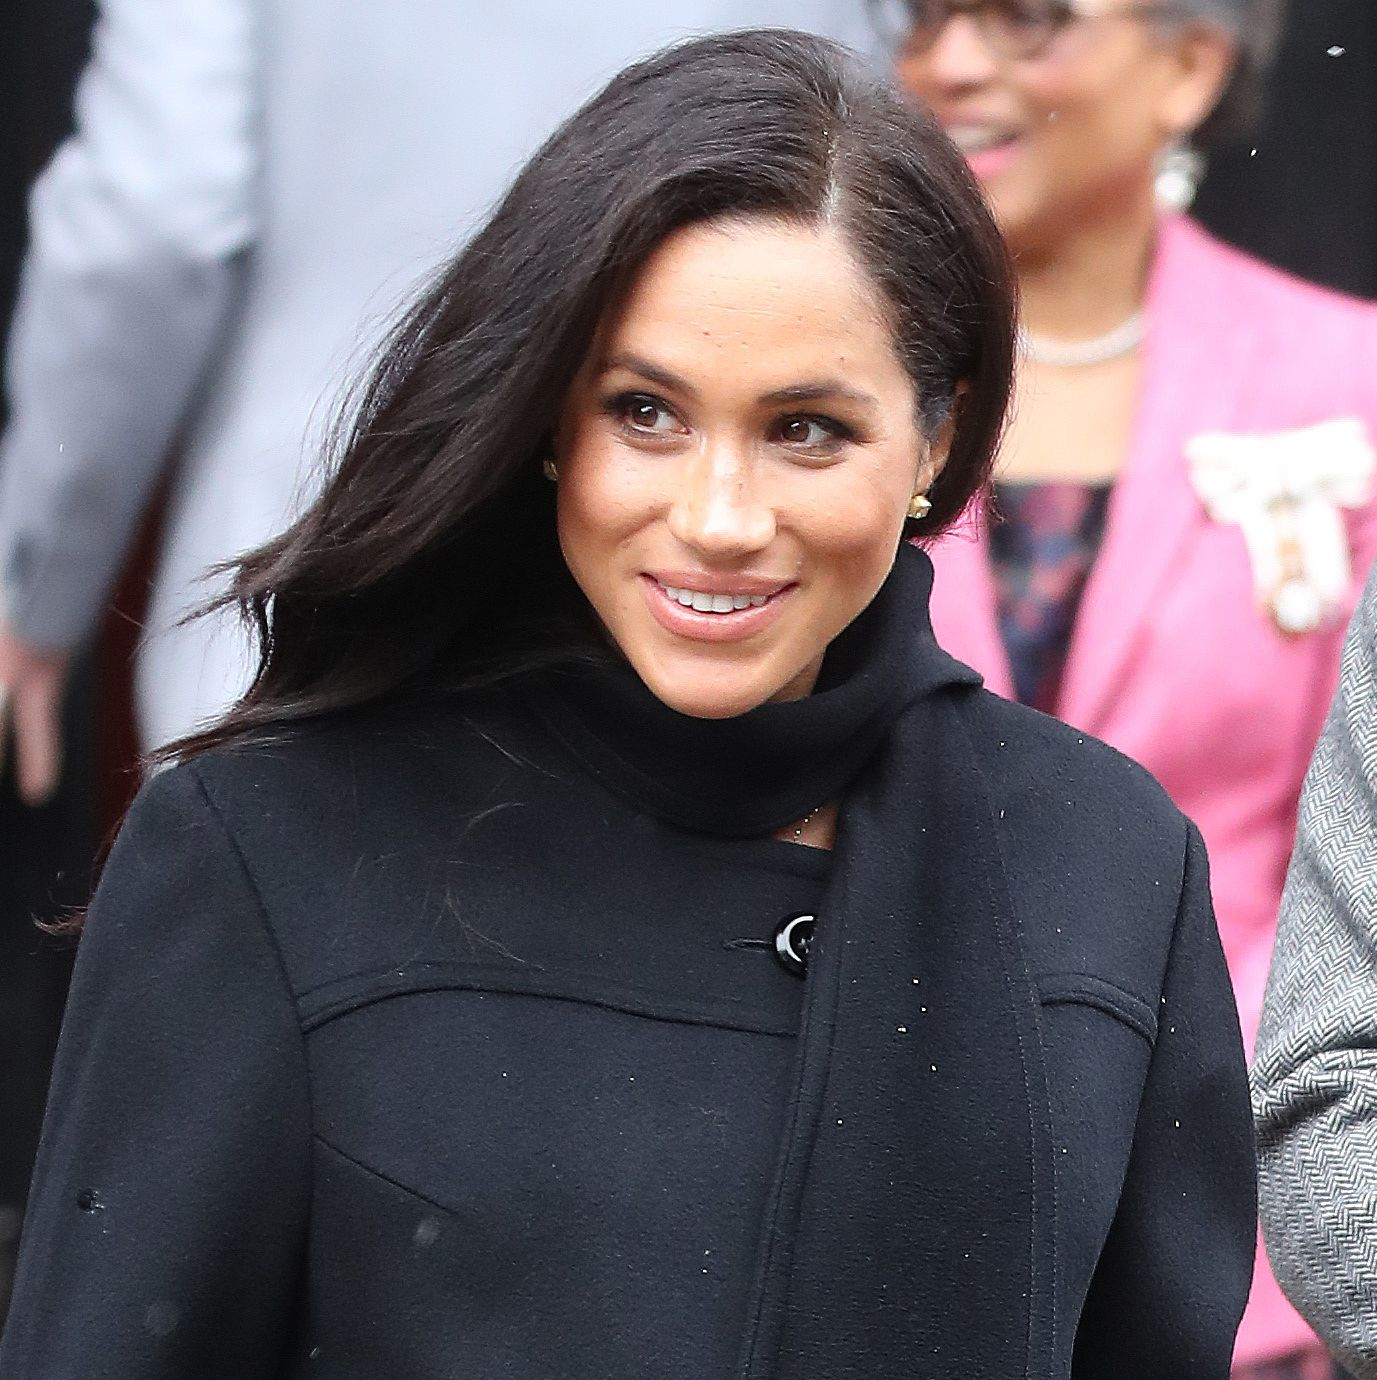 Meghan Markle Is Reportedly in New York City for a 5-Day Girls' Trip